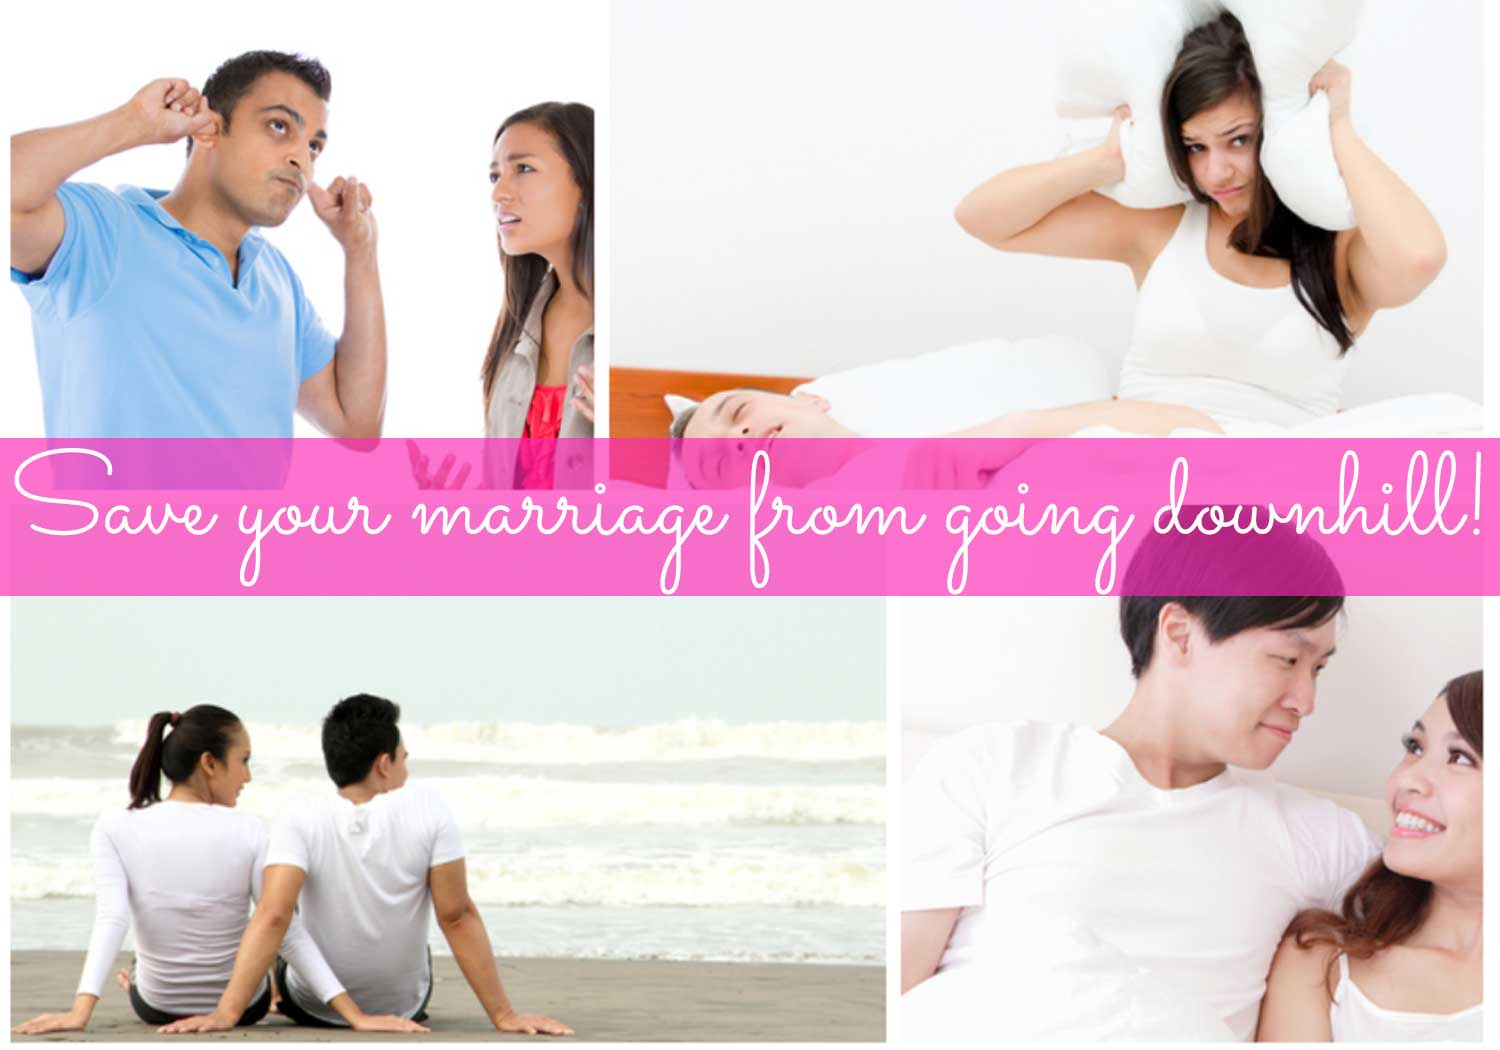 10 ways to save your marriage from going downhill!